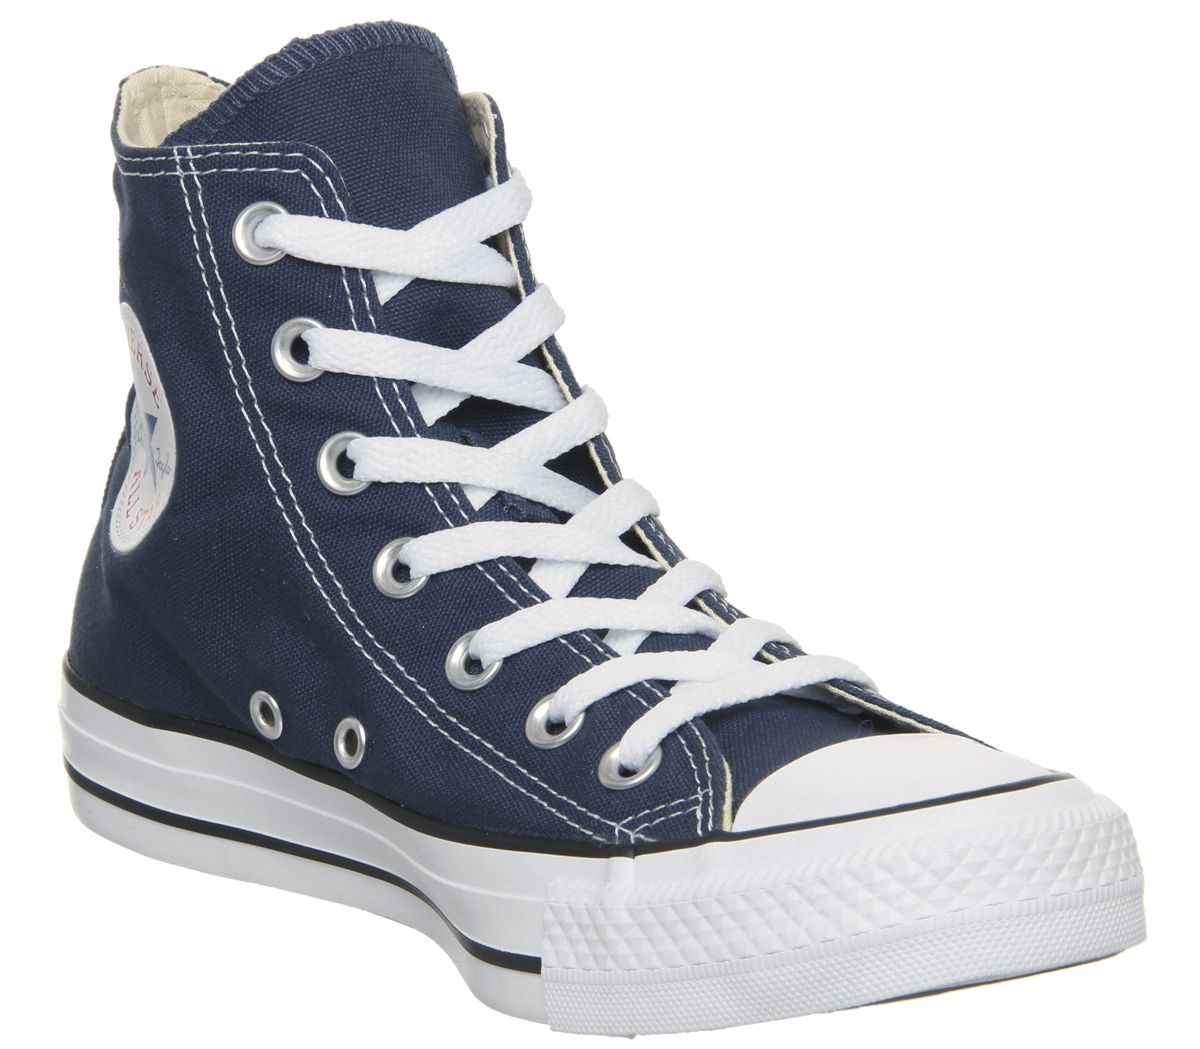 5e779fc6d16f9d Converse All Star Hi Navy Canvas - Unisex Sports